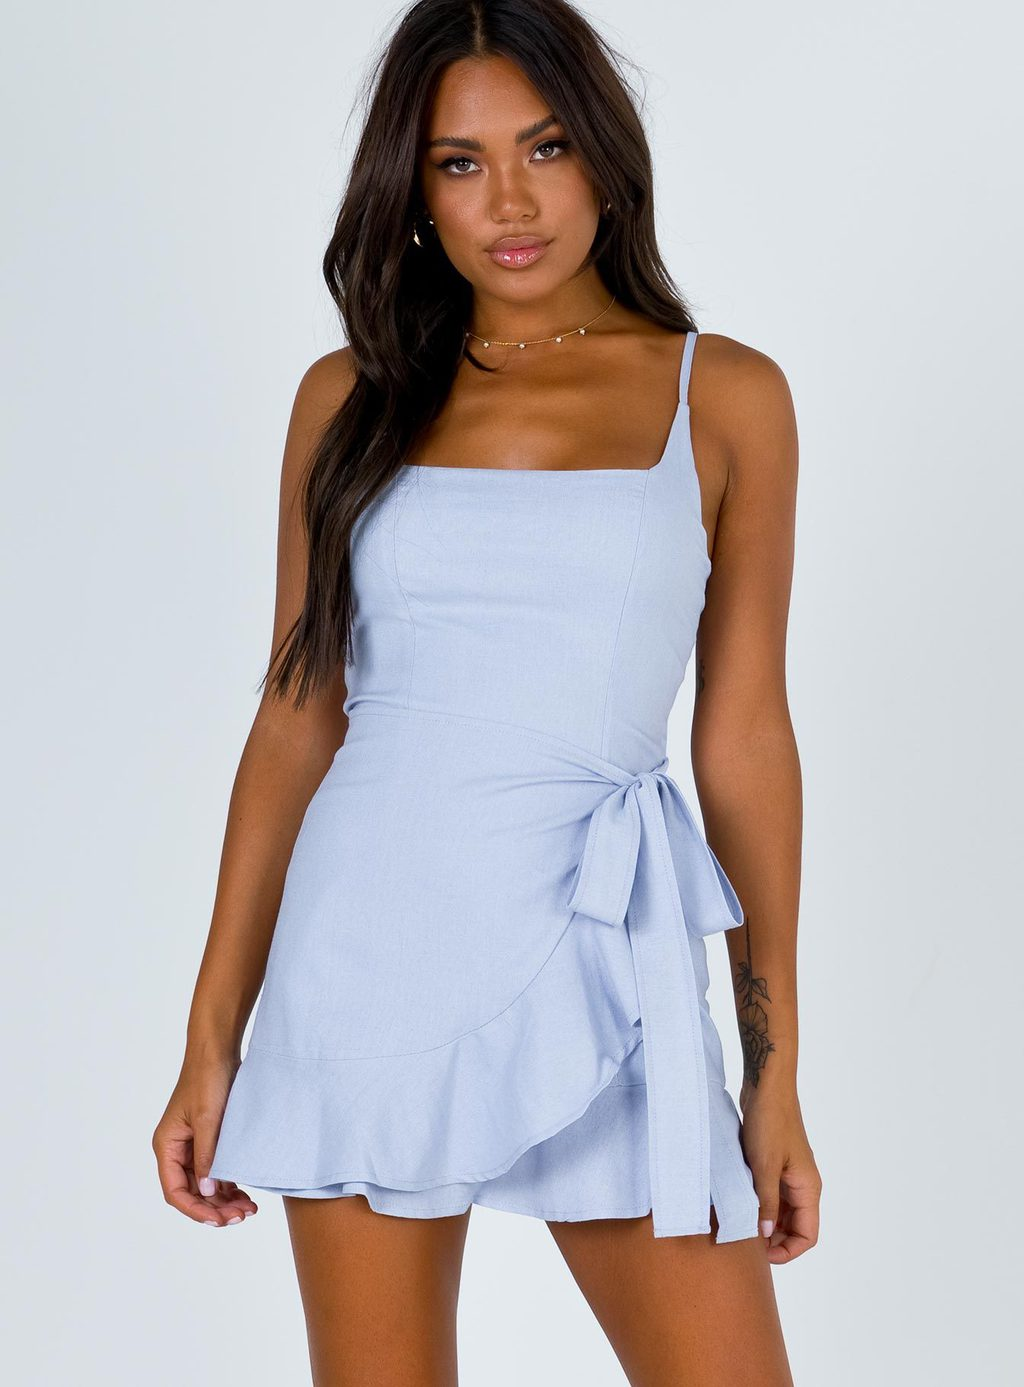 Bow dress from Princess Polly